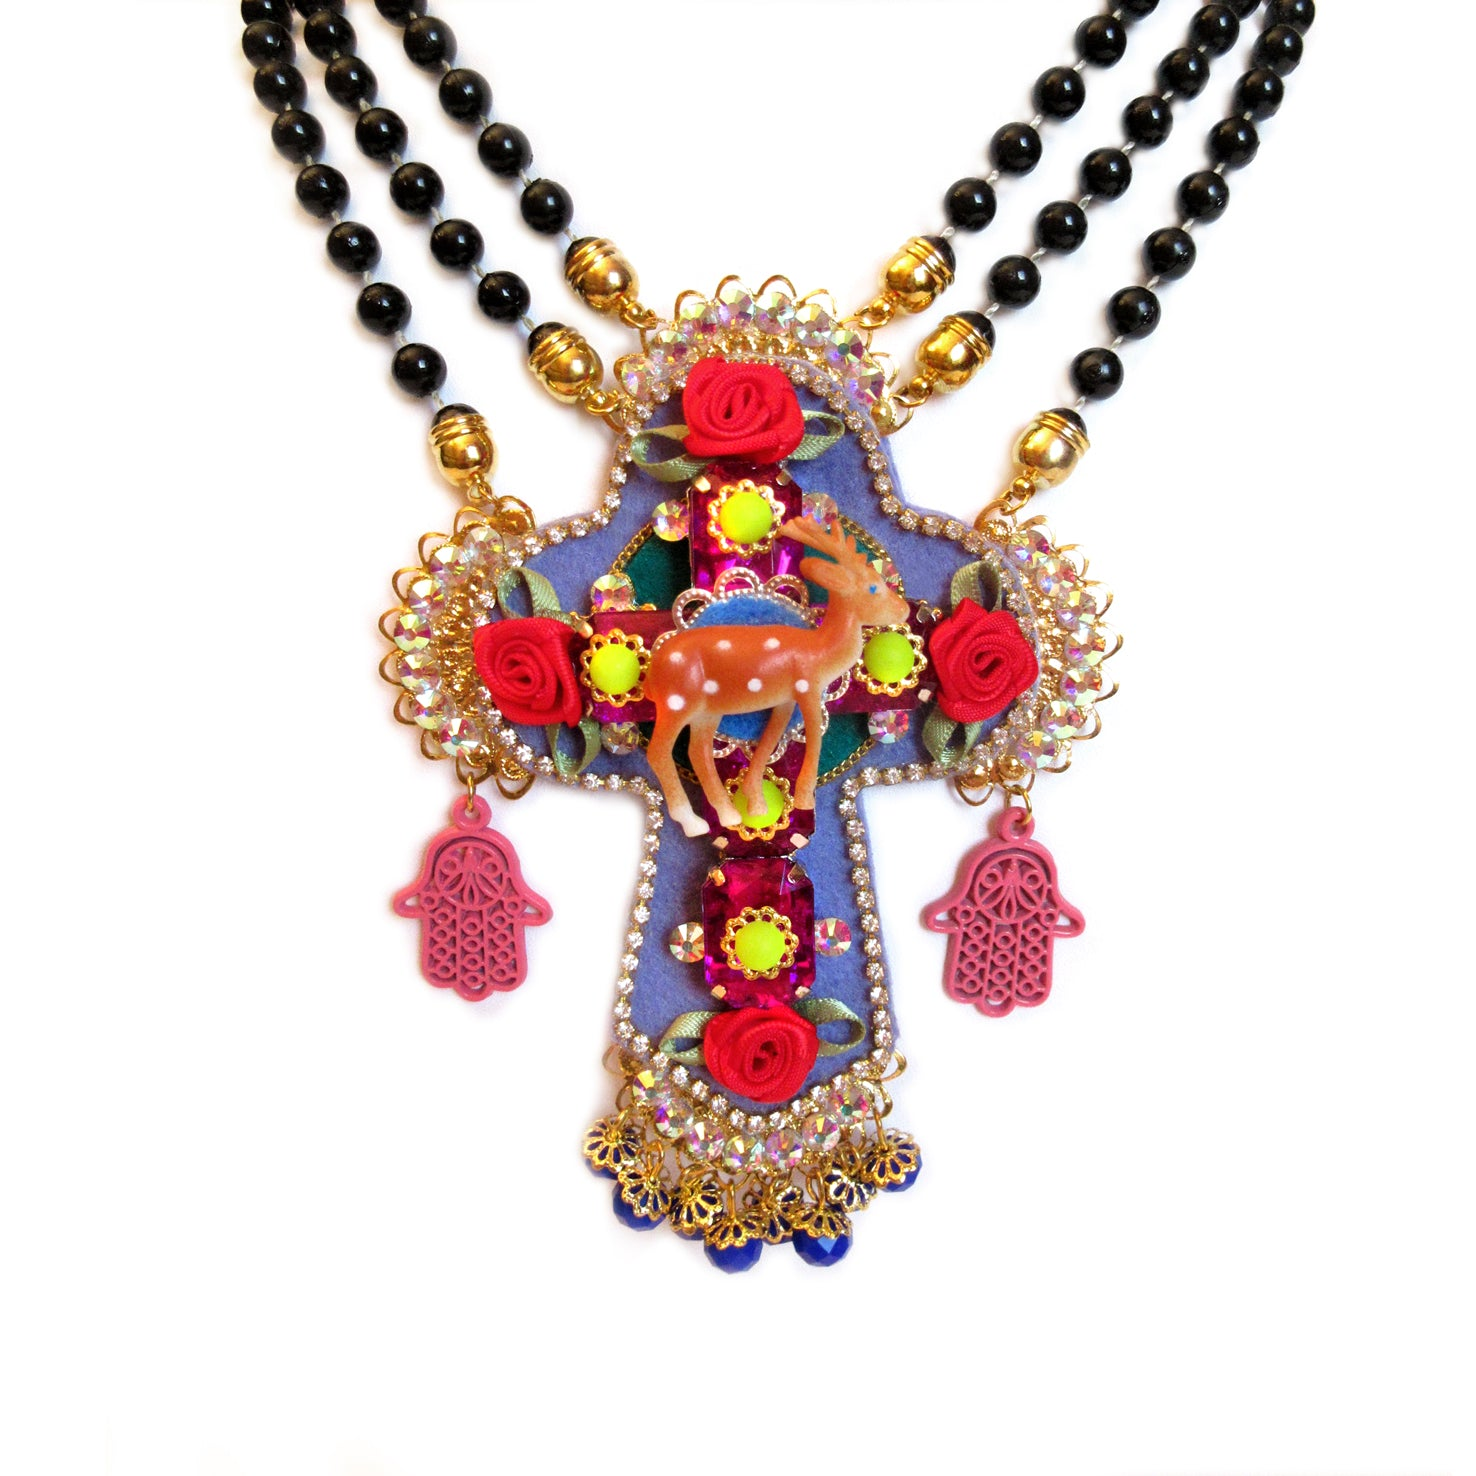 mouchkine jewelry haute couture bambi cross necklace, a handmade in france amazing jewel.